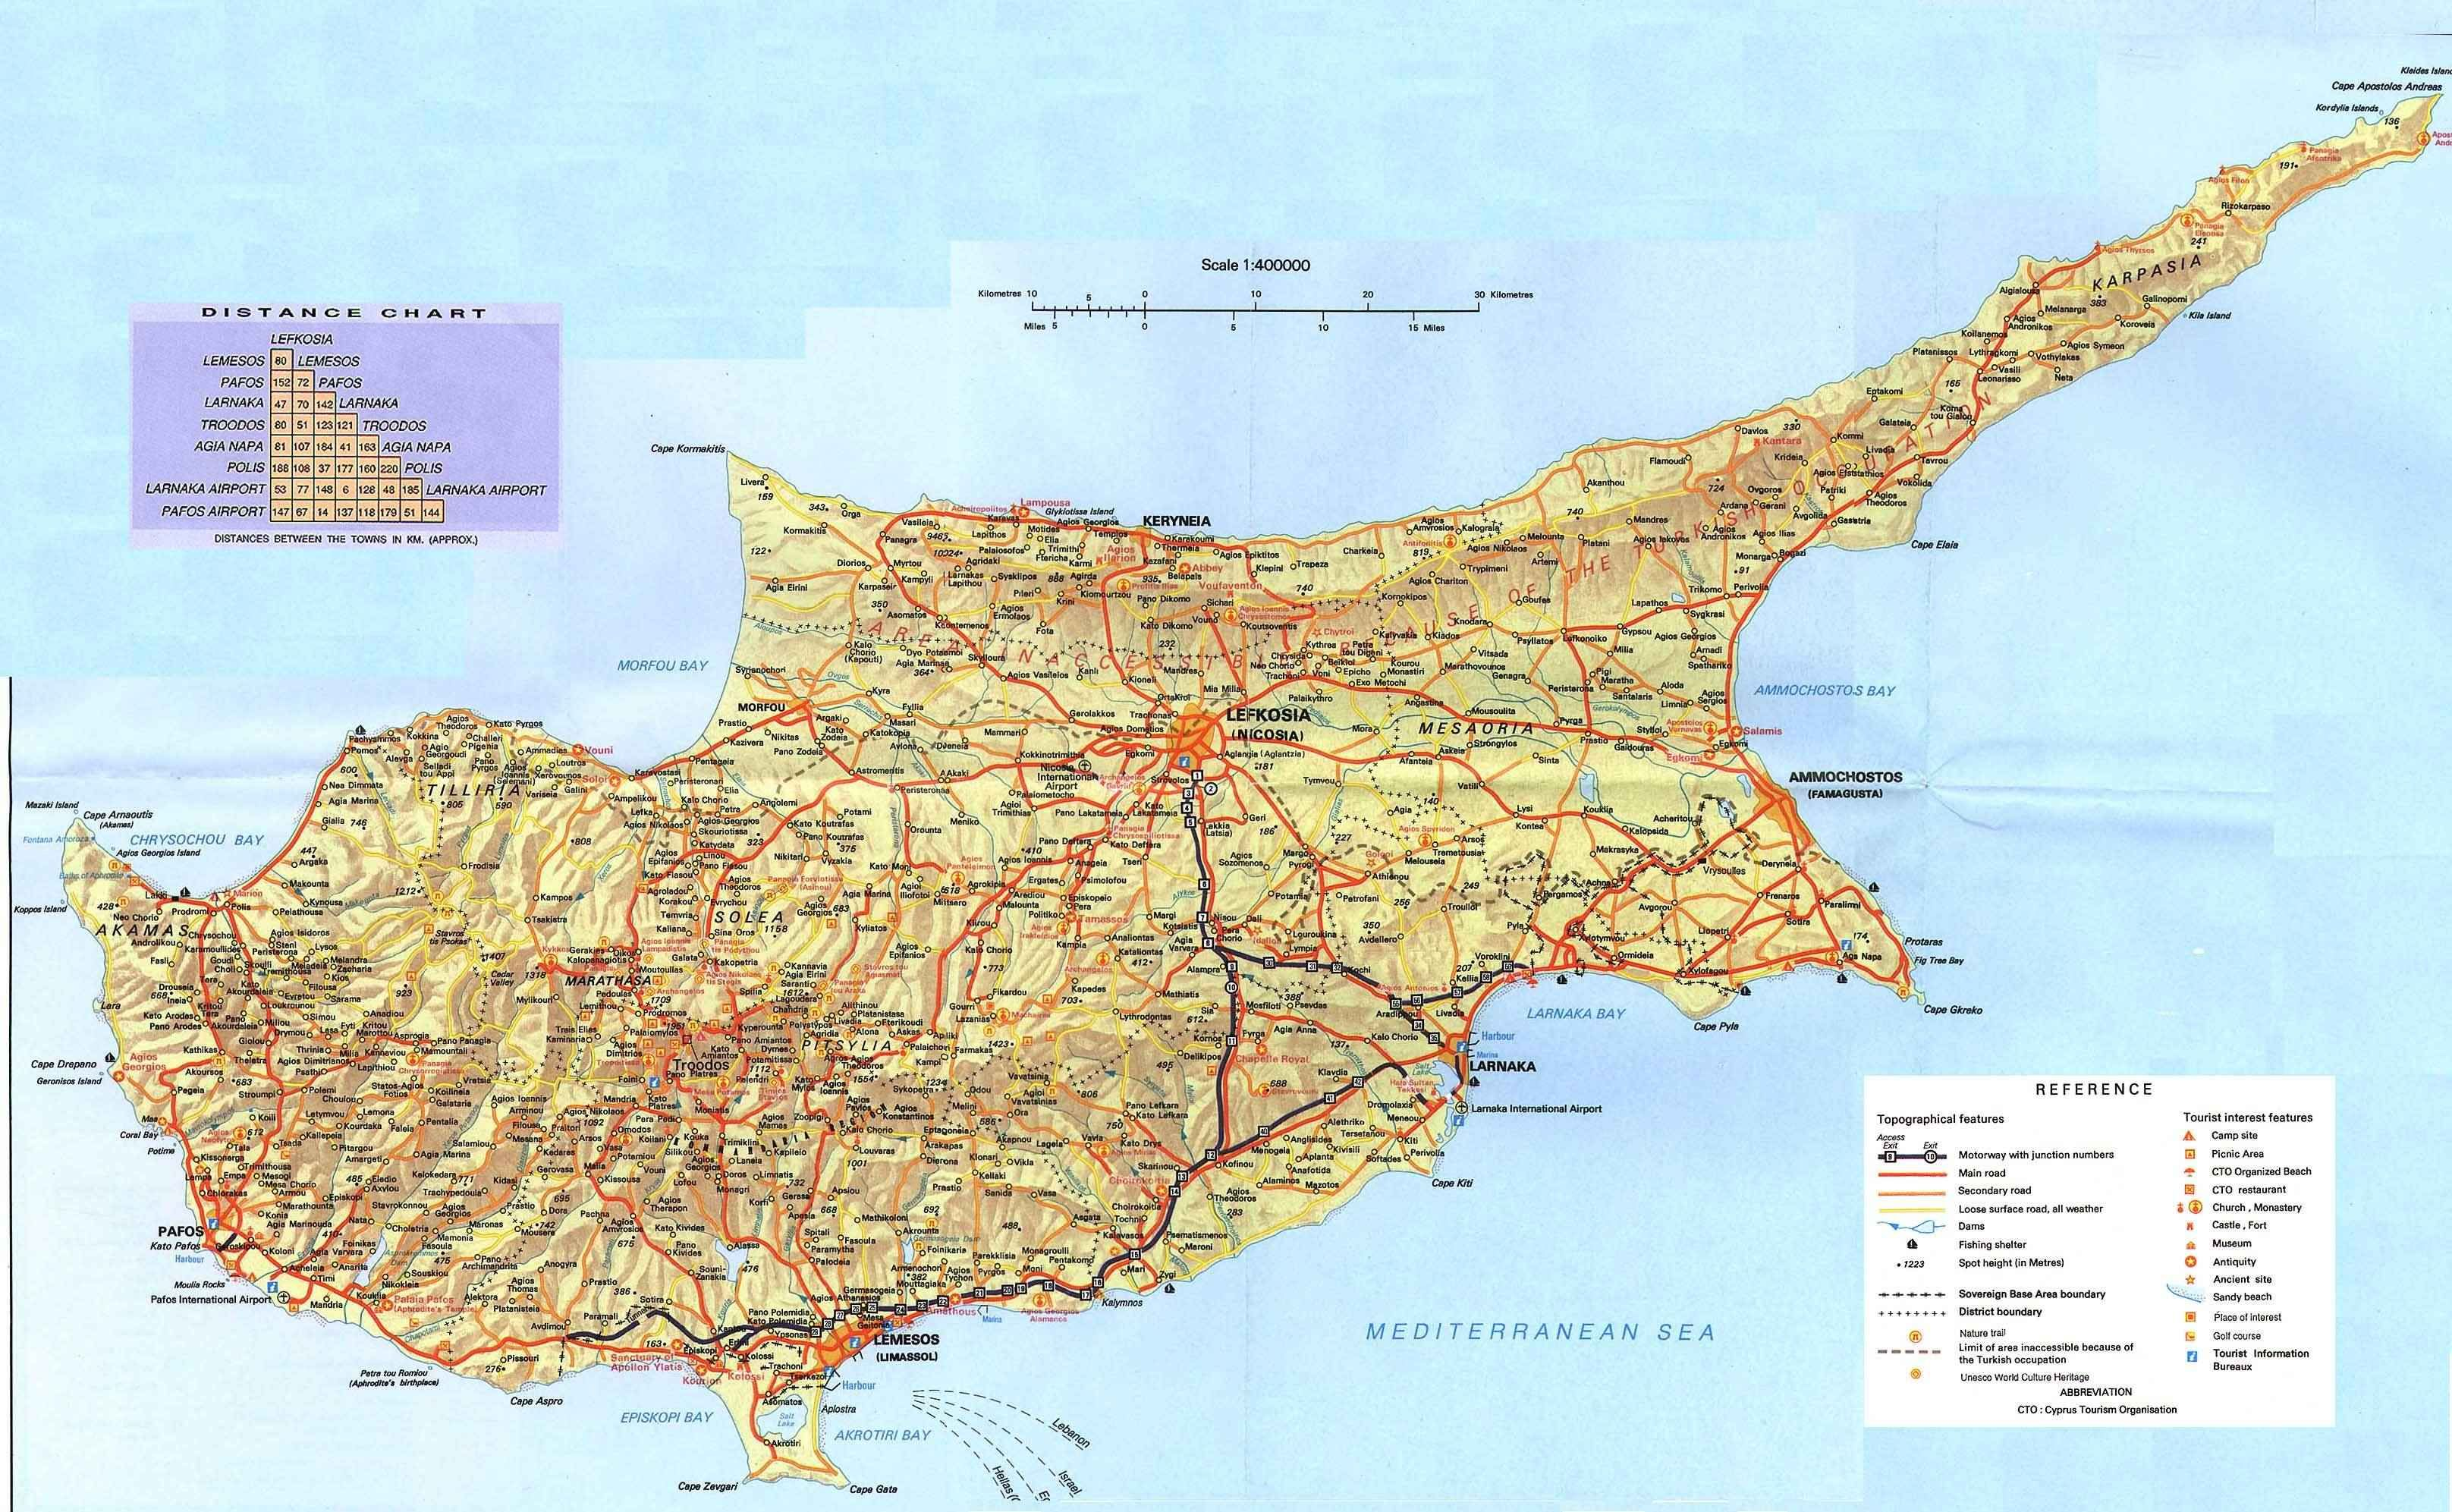 cyprus large scale map small scale map pinterest